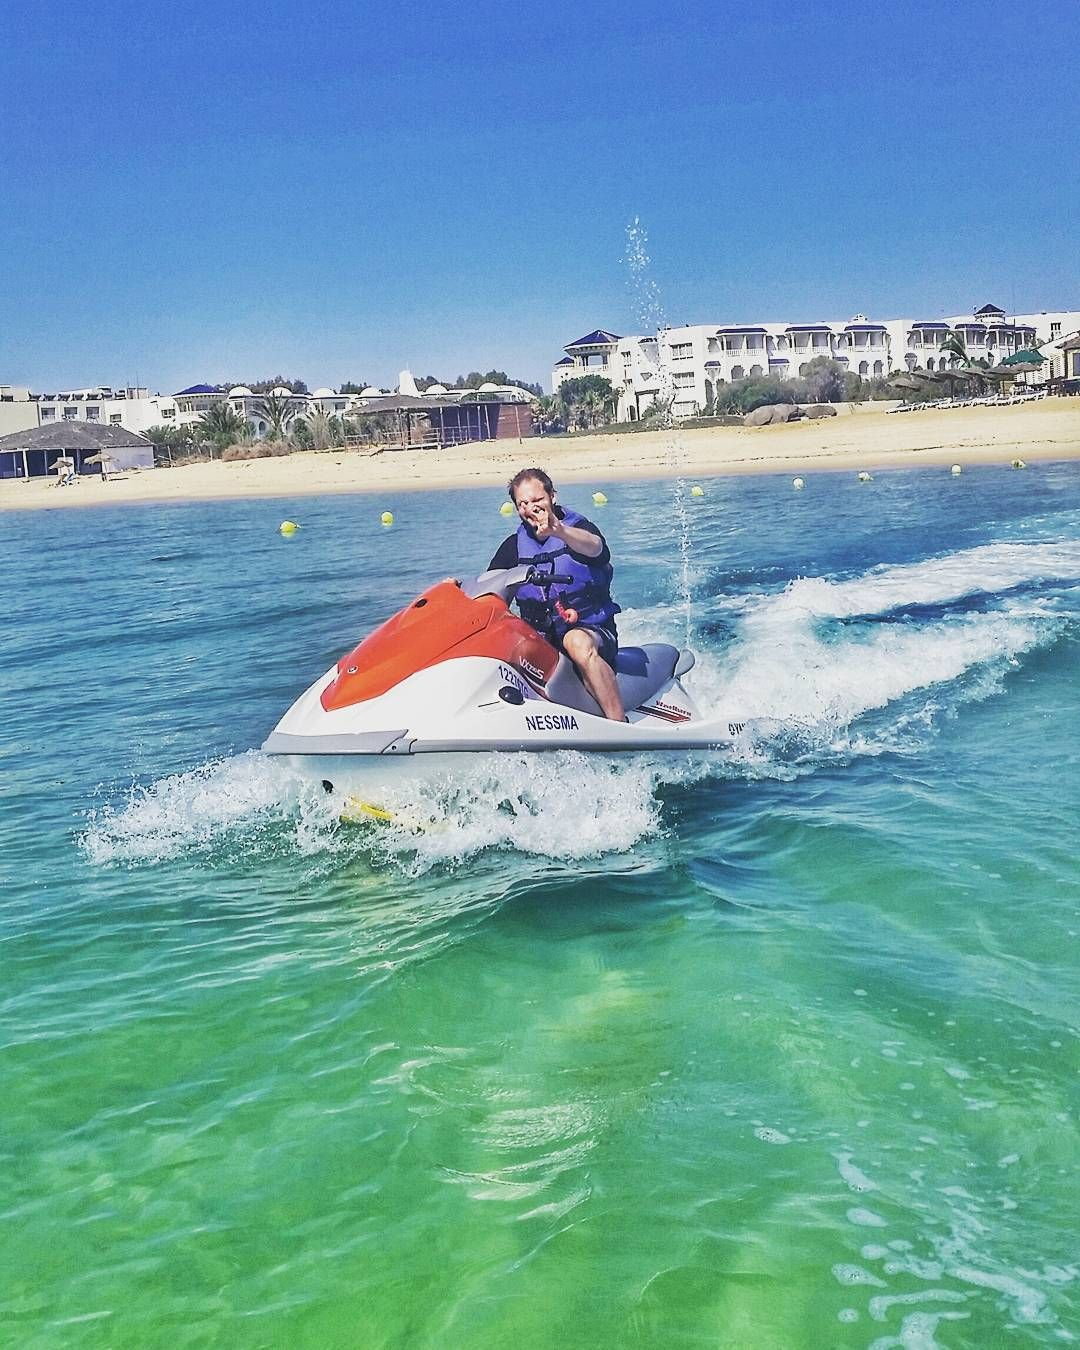 Yeah baby! My first time on one of these beasts and it's really one big adrenaline boost. No idea why I never did this before.  Awesomeness!   #TunisiaChallenge